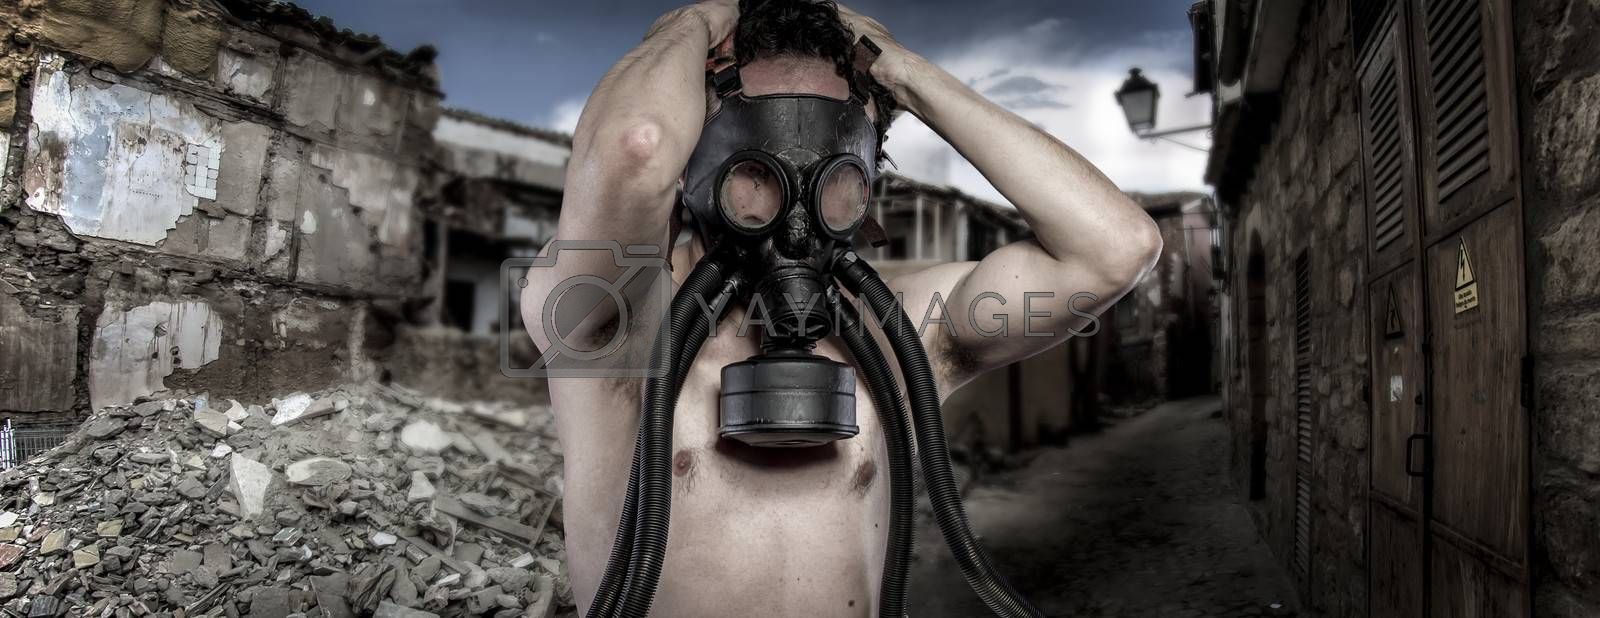 Toxic.Environmental disaster. Post apocalyptic survivor in gas mask